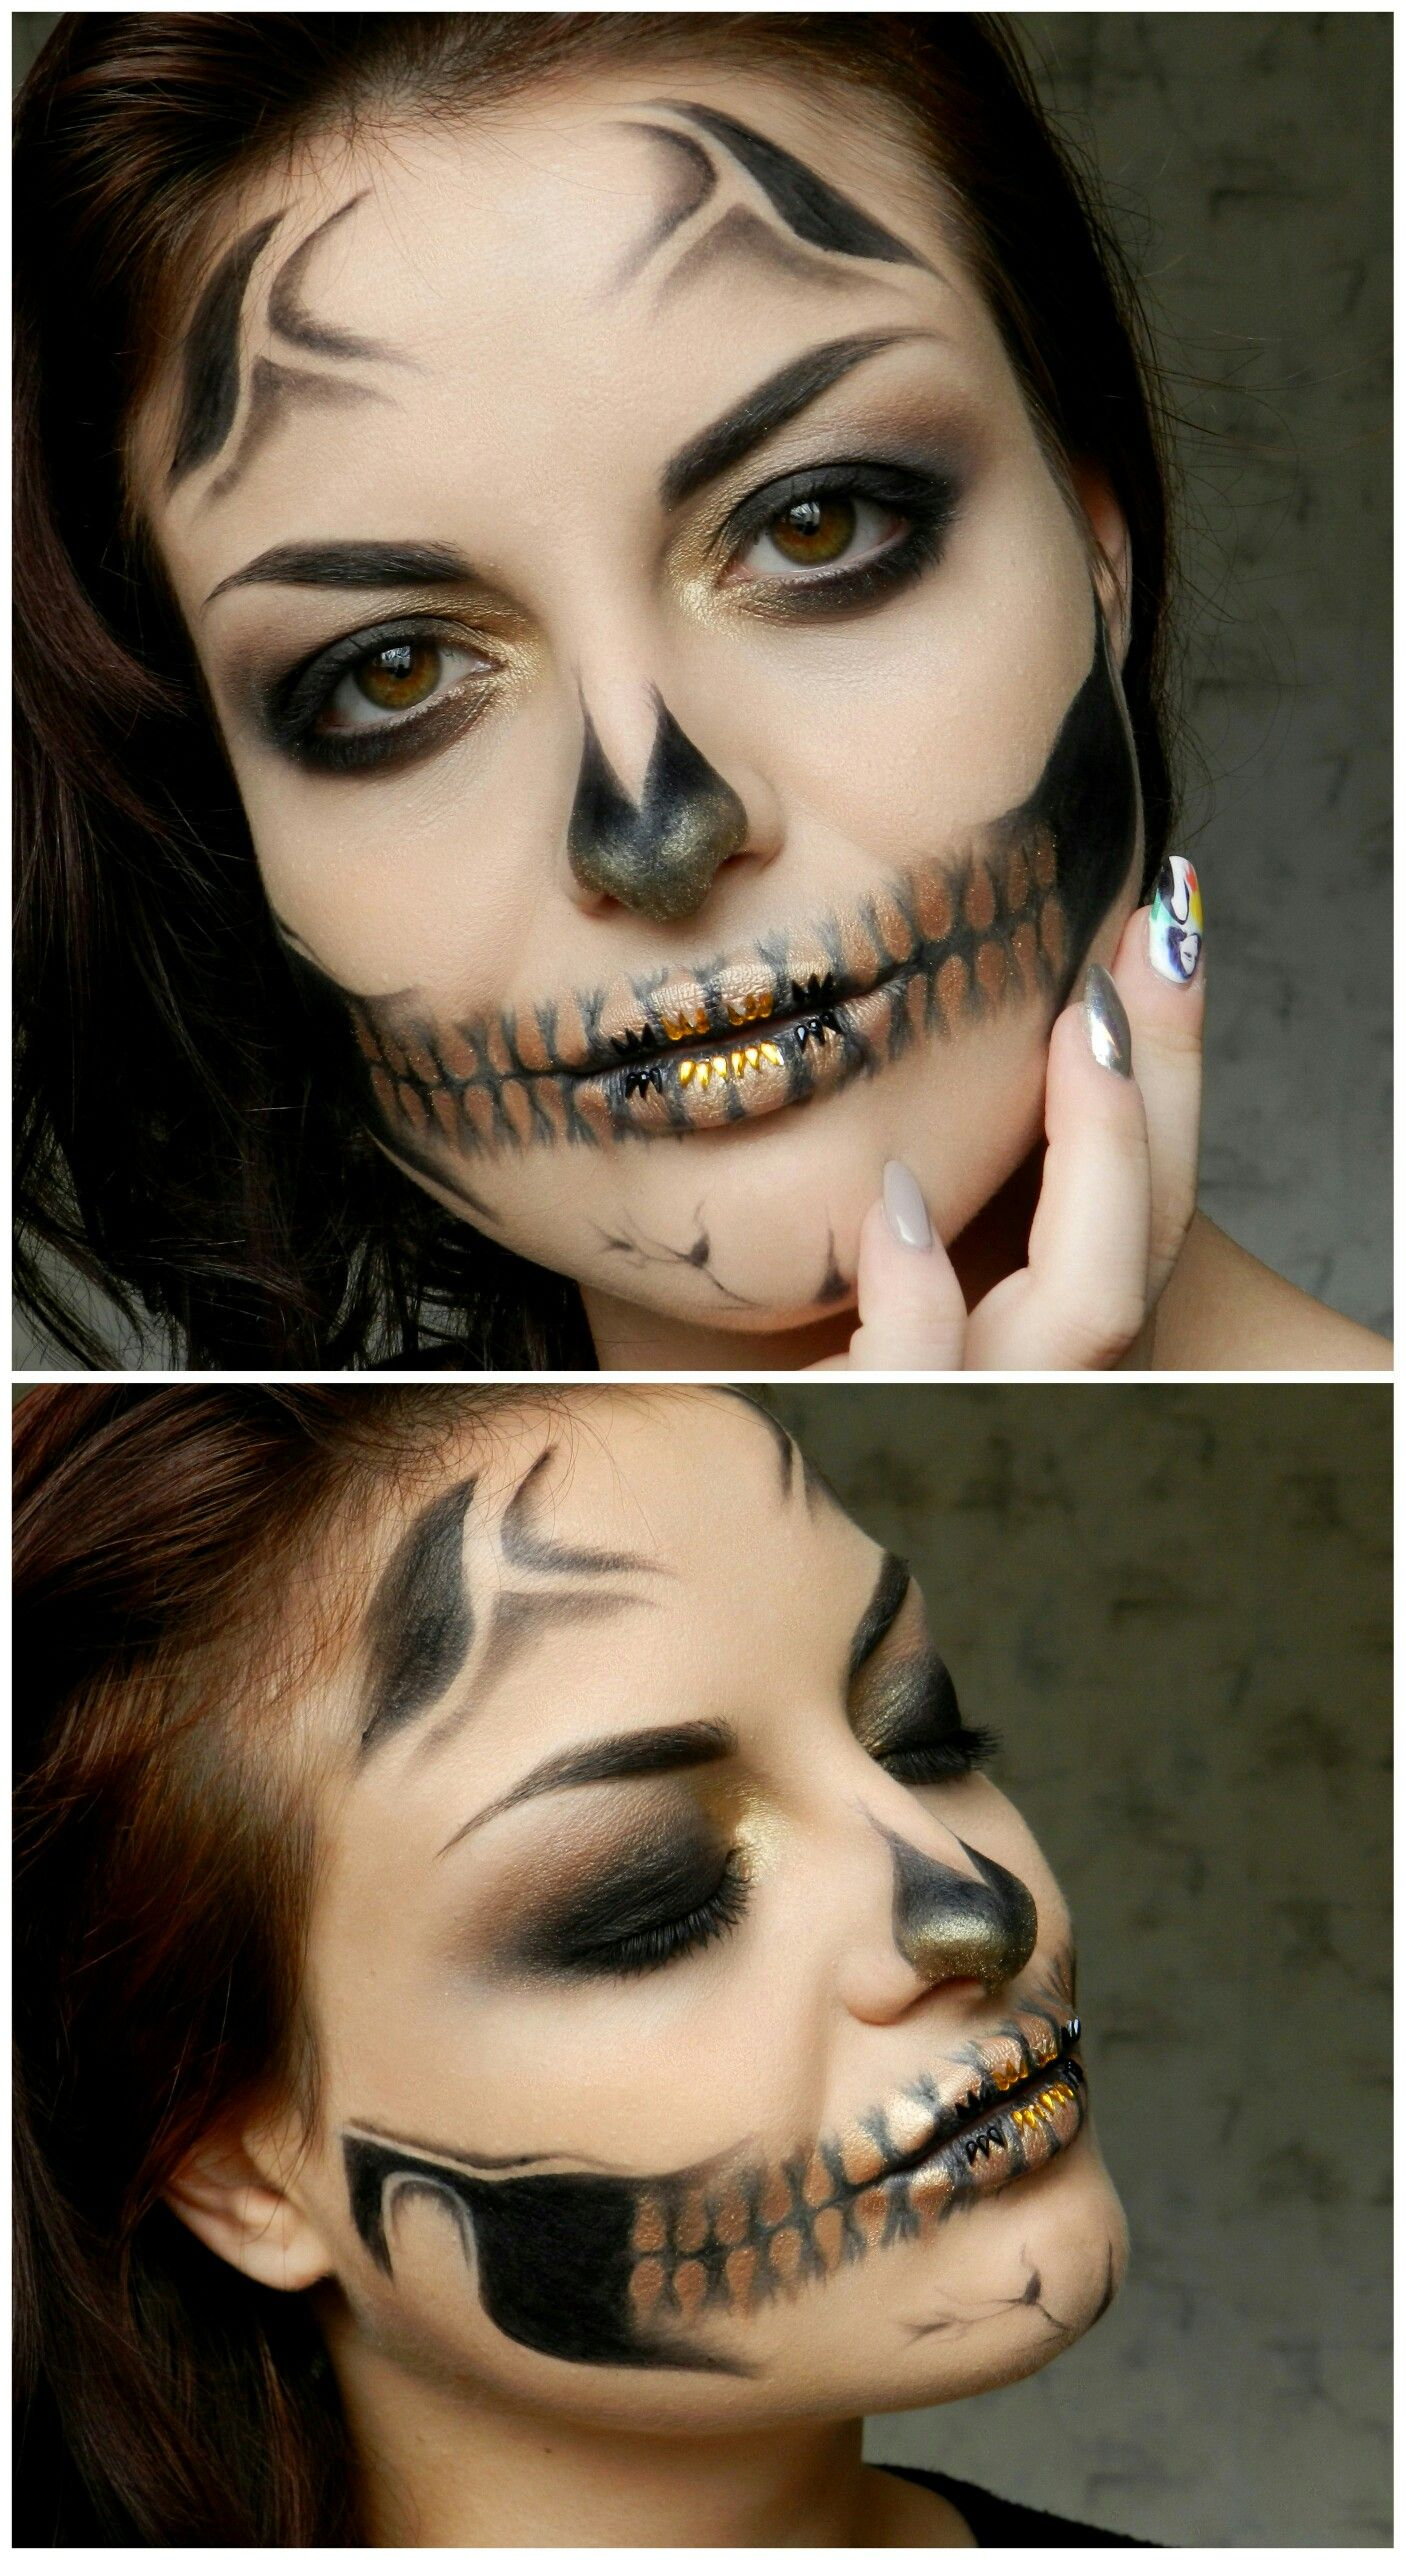 makeup Halloween ideas creative looks gold black